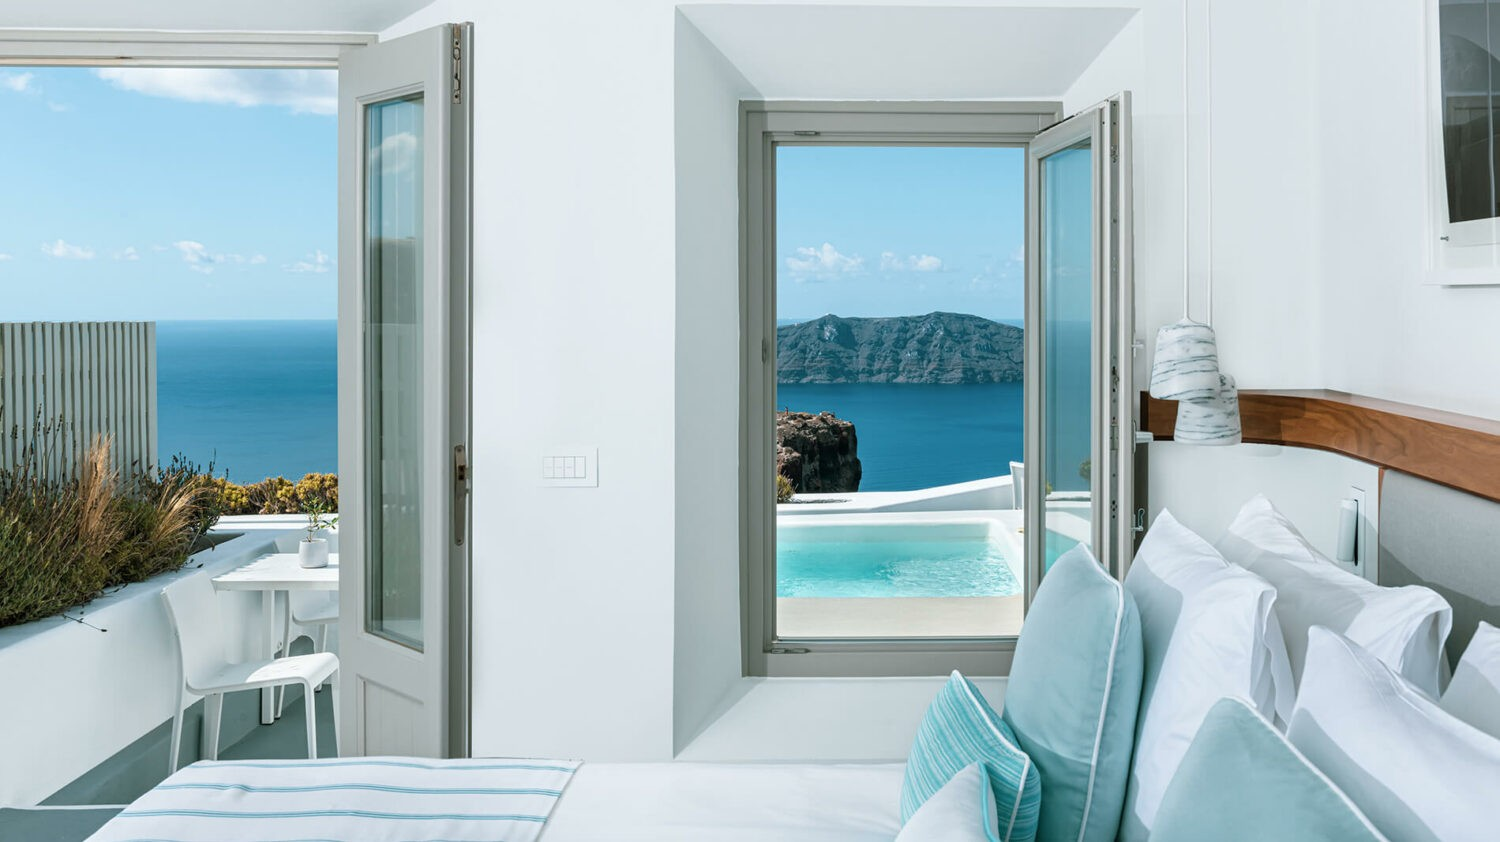 grace hotel, auberge resorts collection greece-bedroom